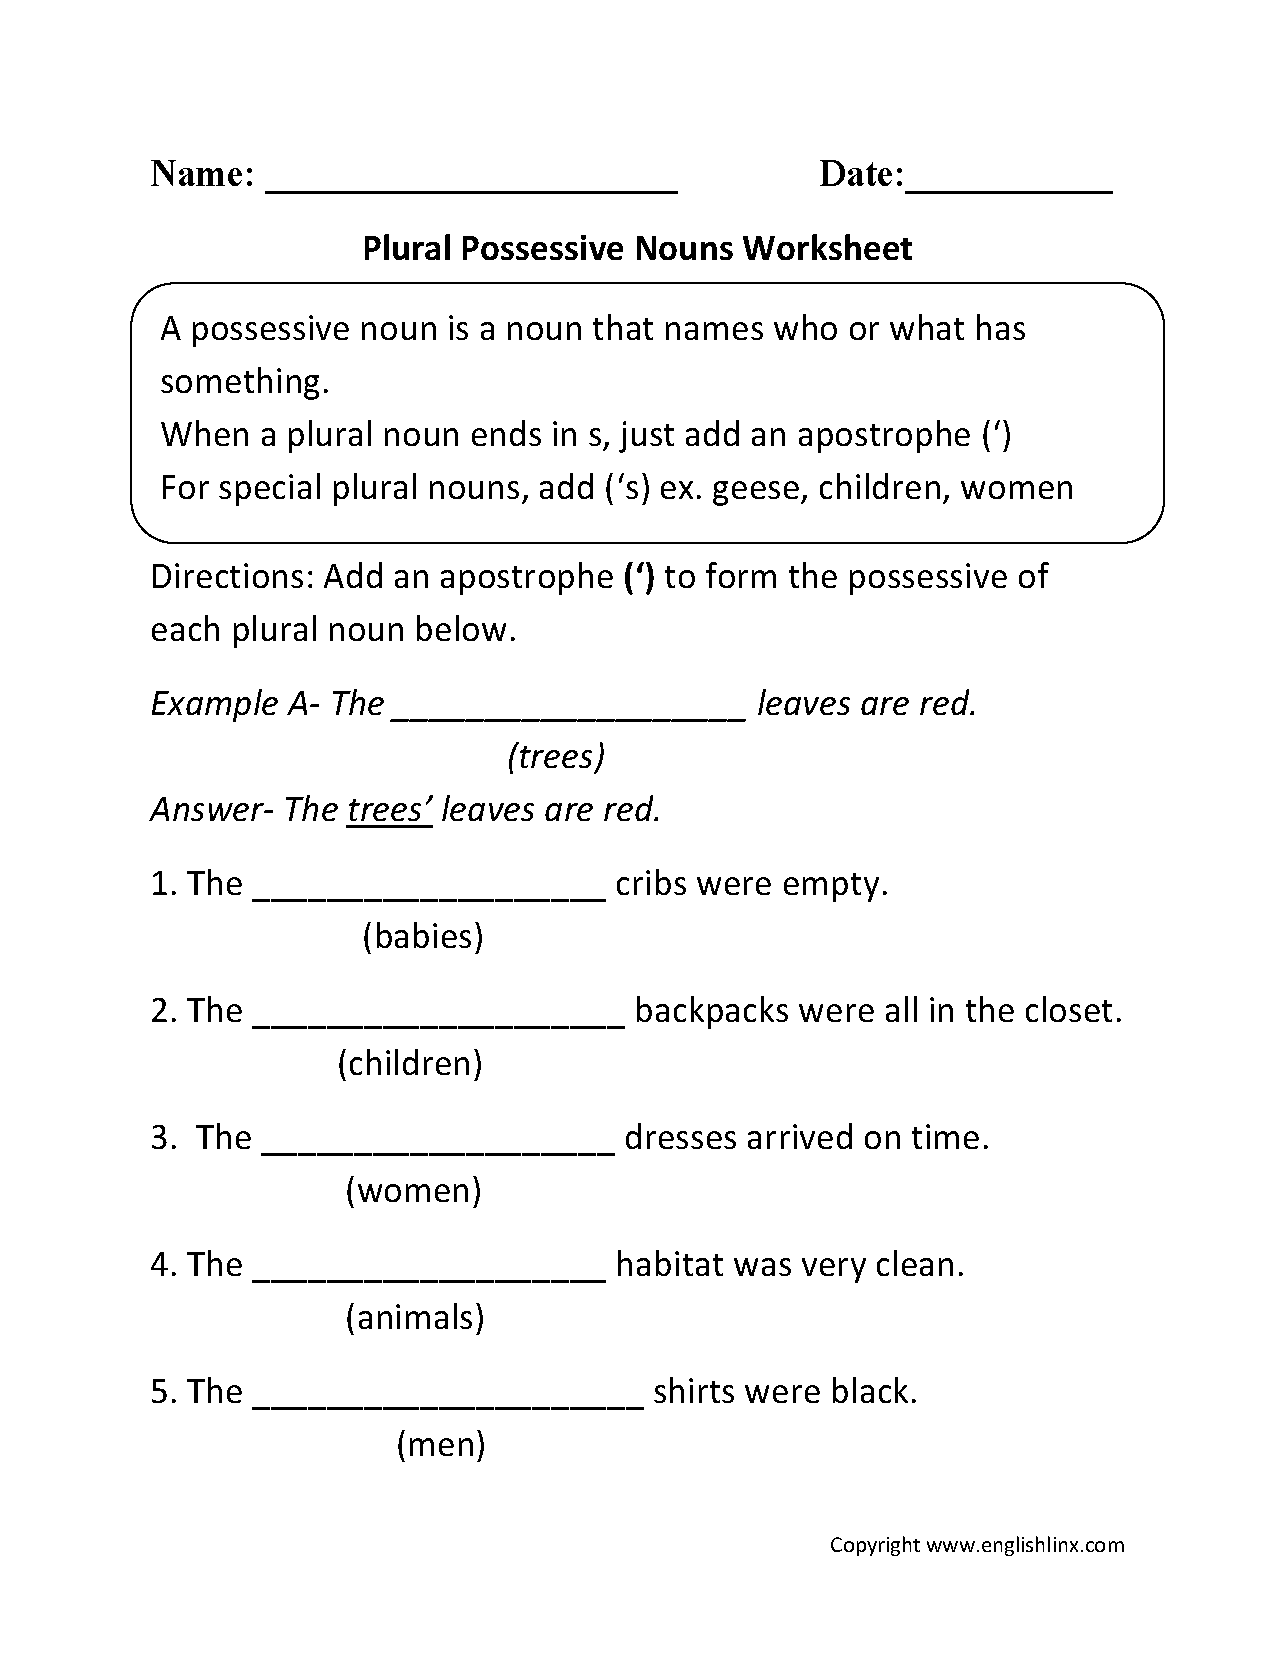 Worksheets Grammar Worksheets Third Grade plural possessive nouns worksheets pinterest worksheets